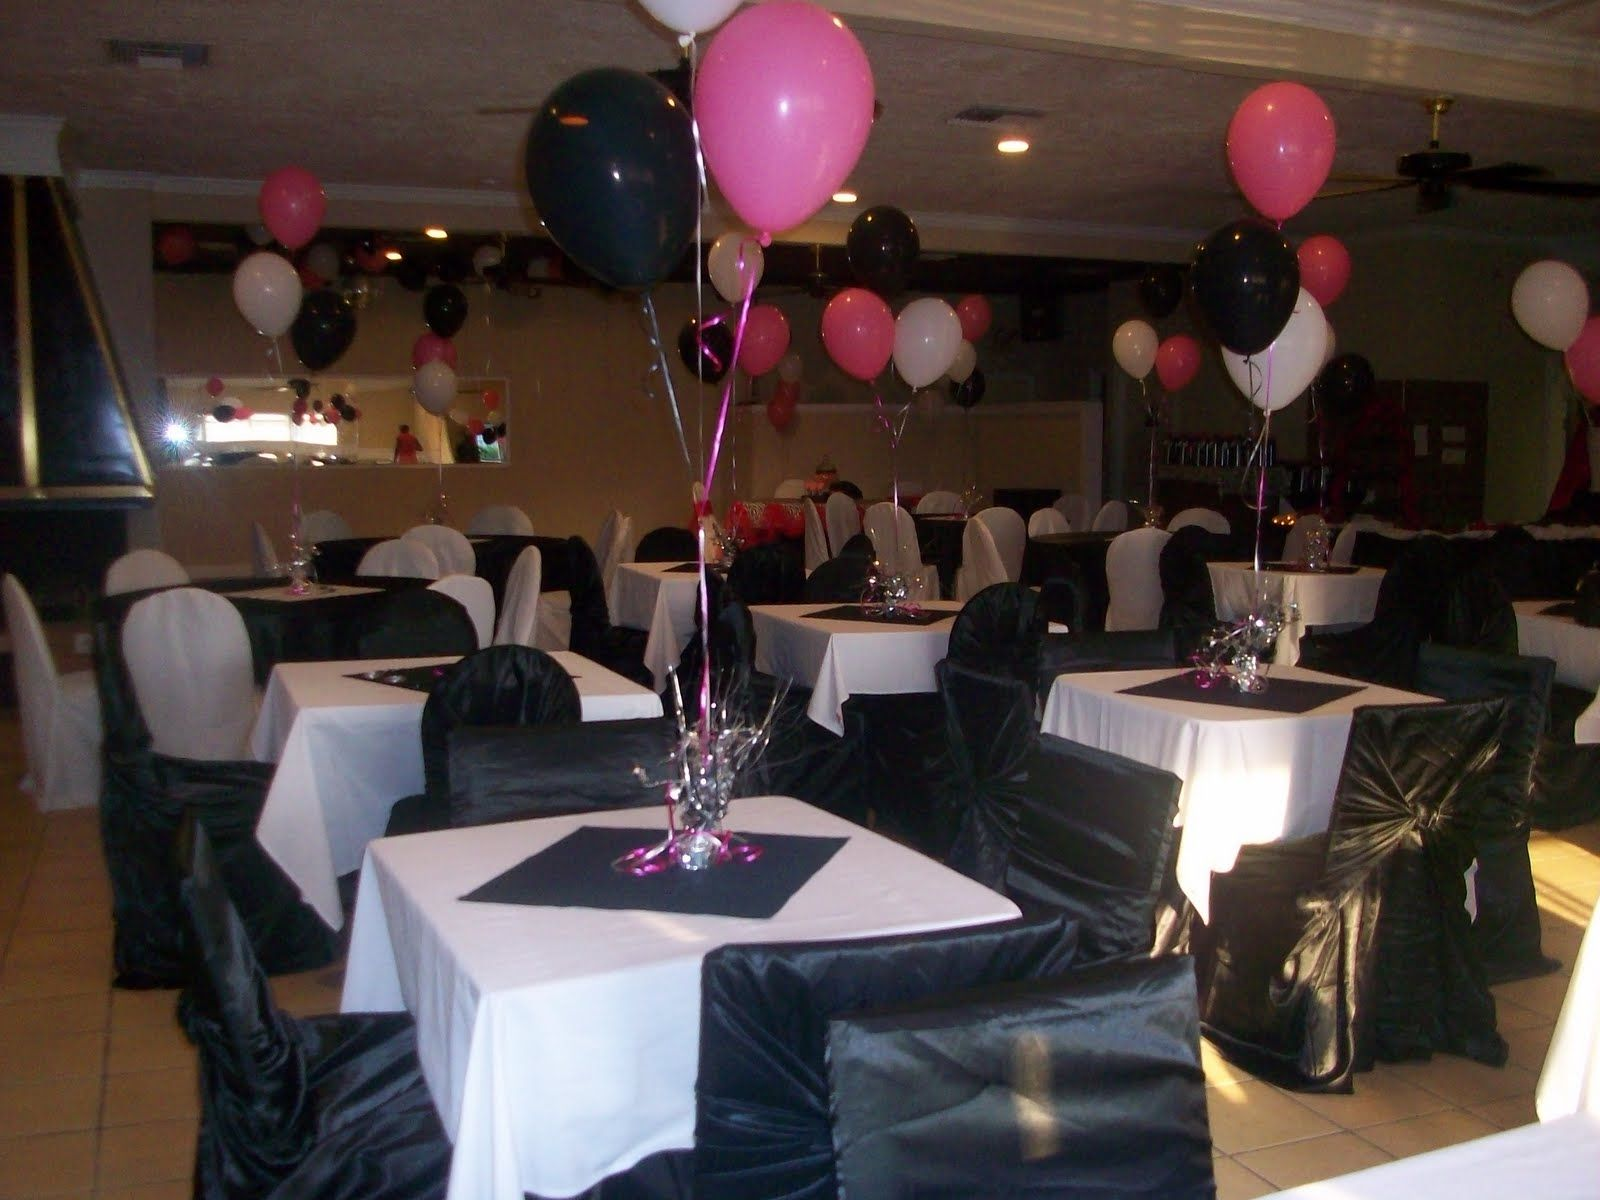 Family reunion banquet centerpieces call us today for a